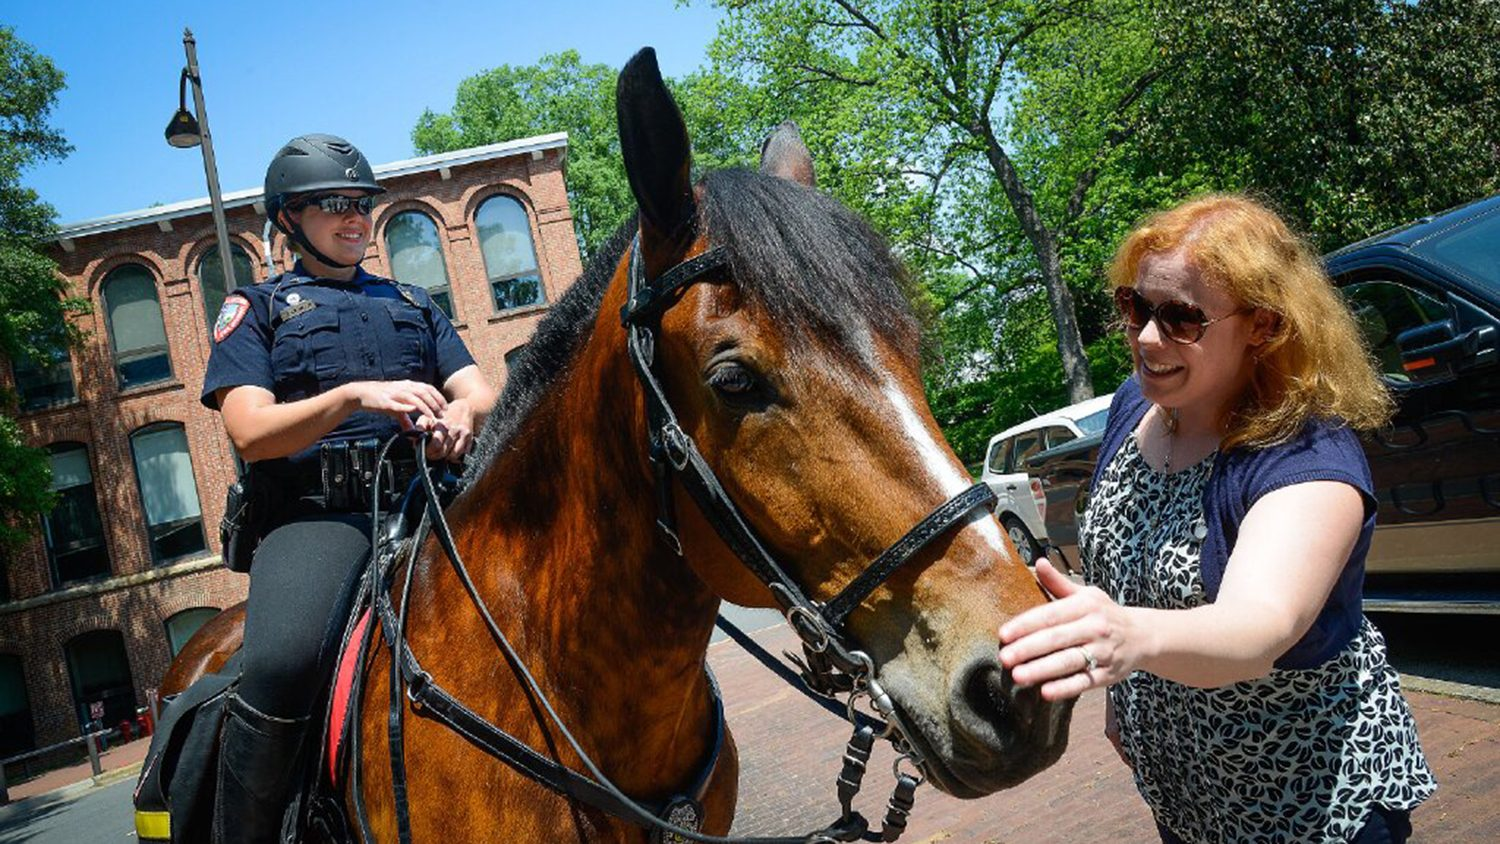 Mounted officer Jeanne Miller with her adviser.